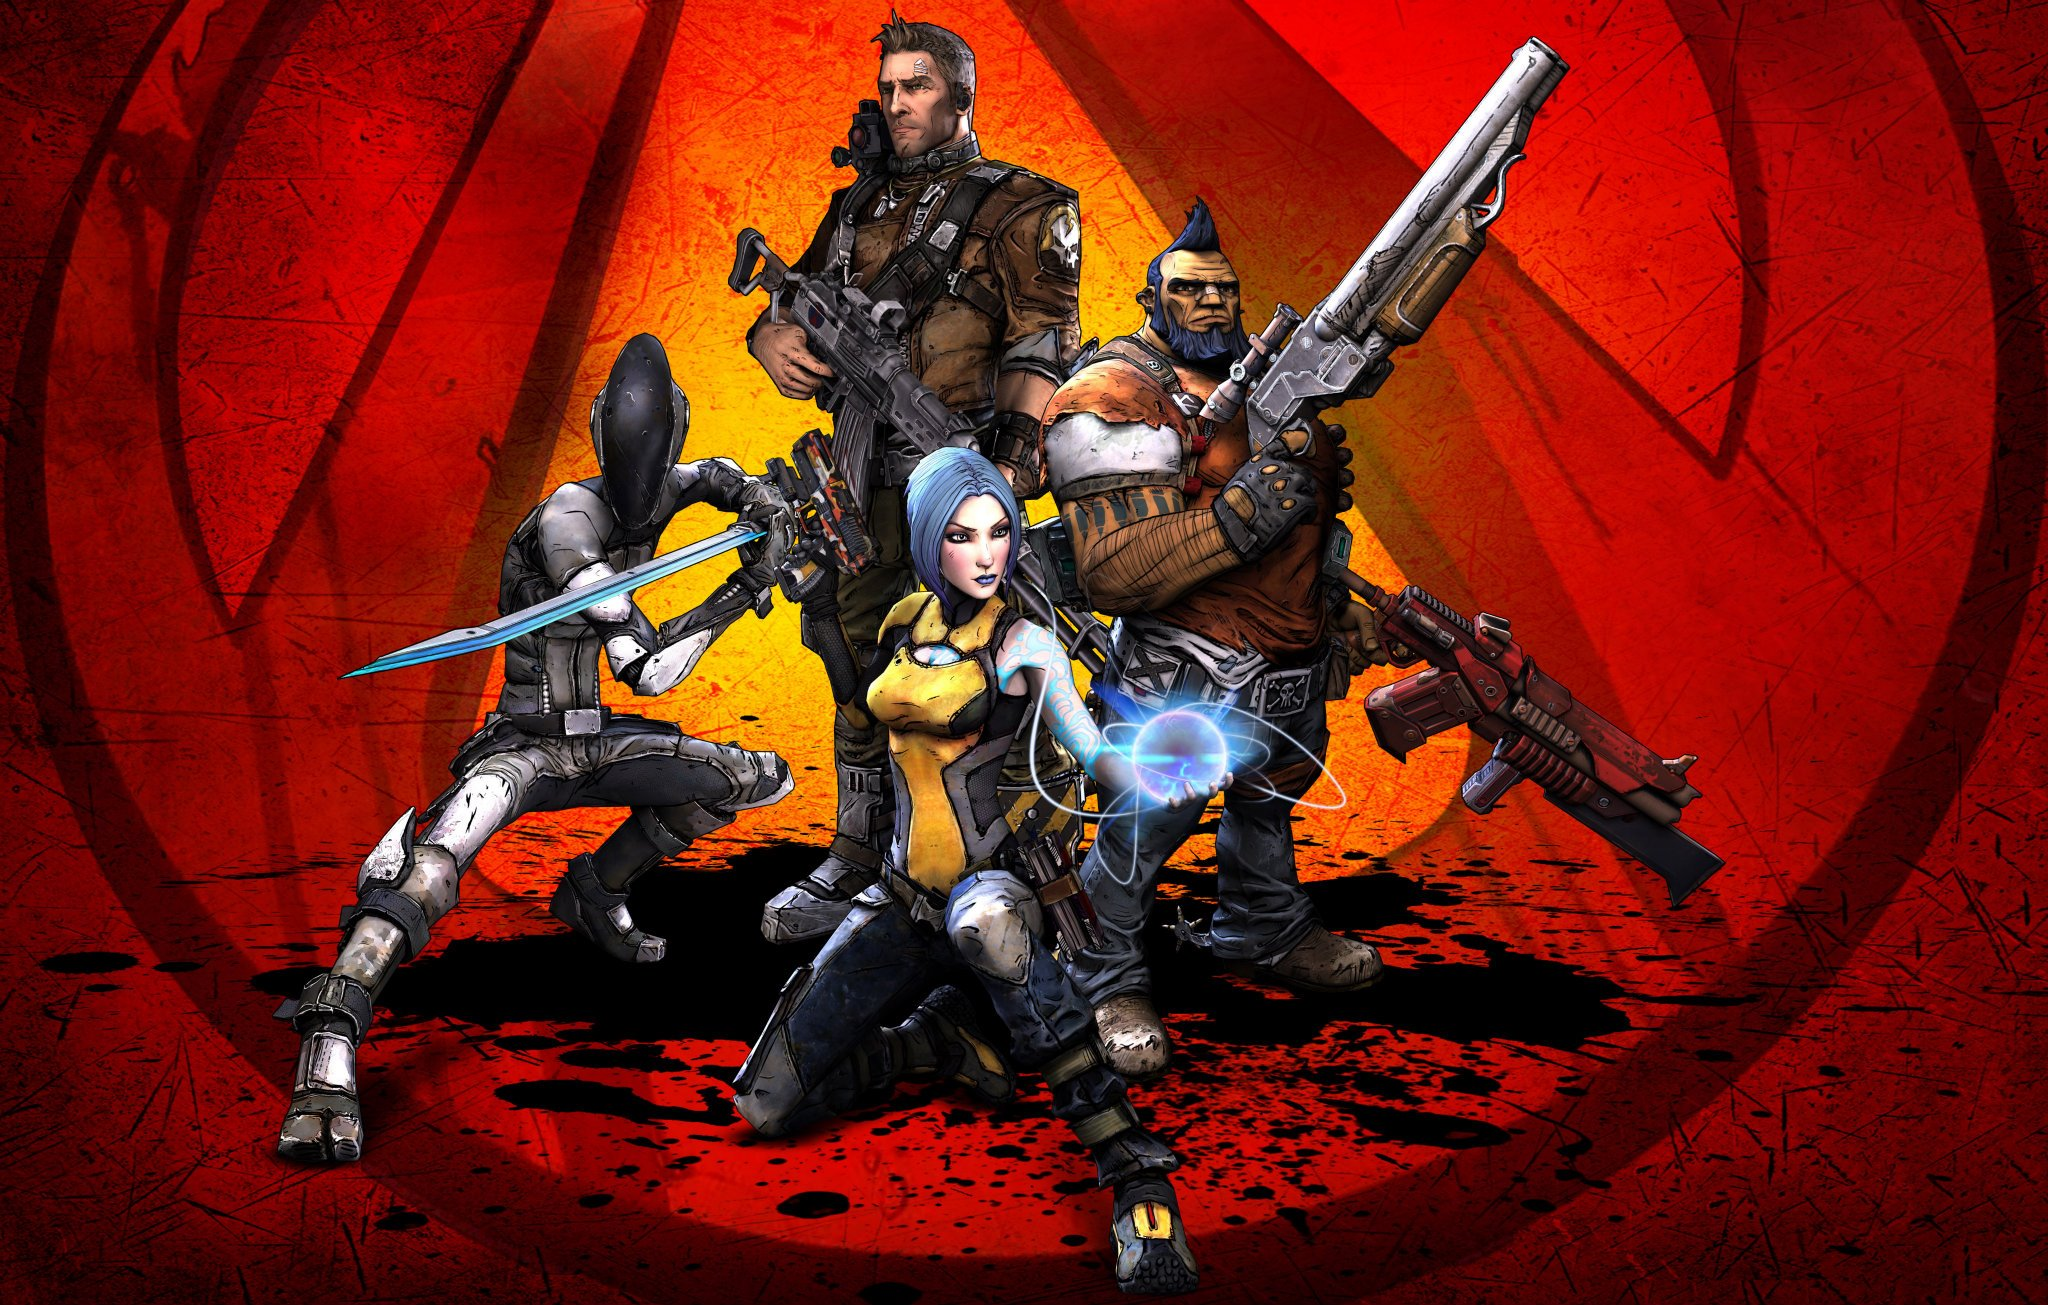 7 tips for playing Borderlands 2 with friends - NBC News